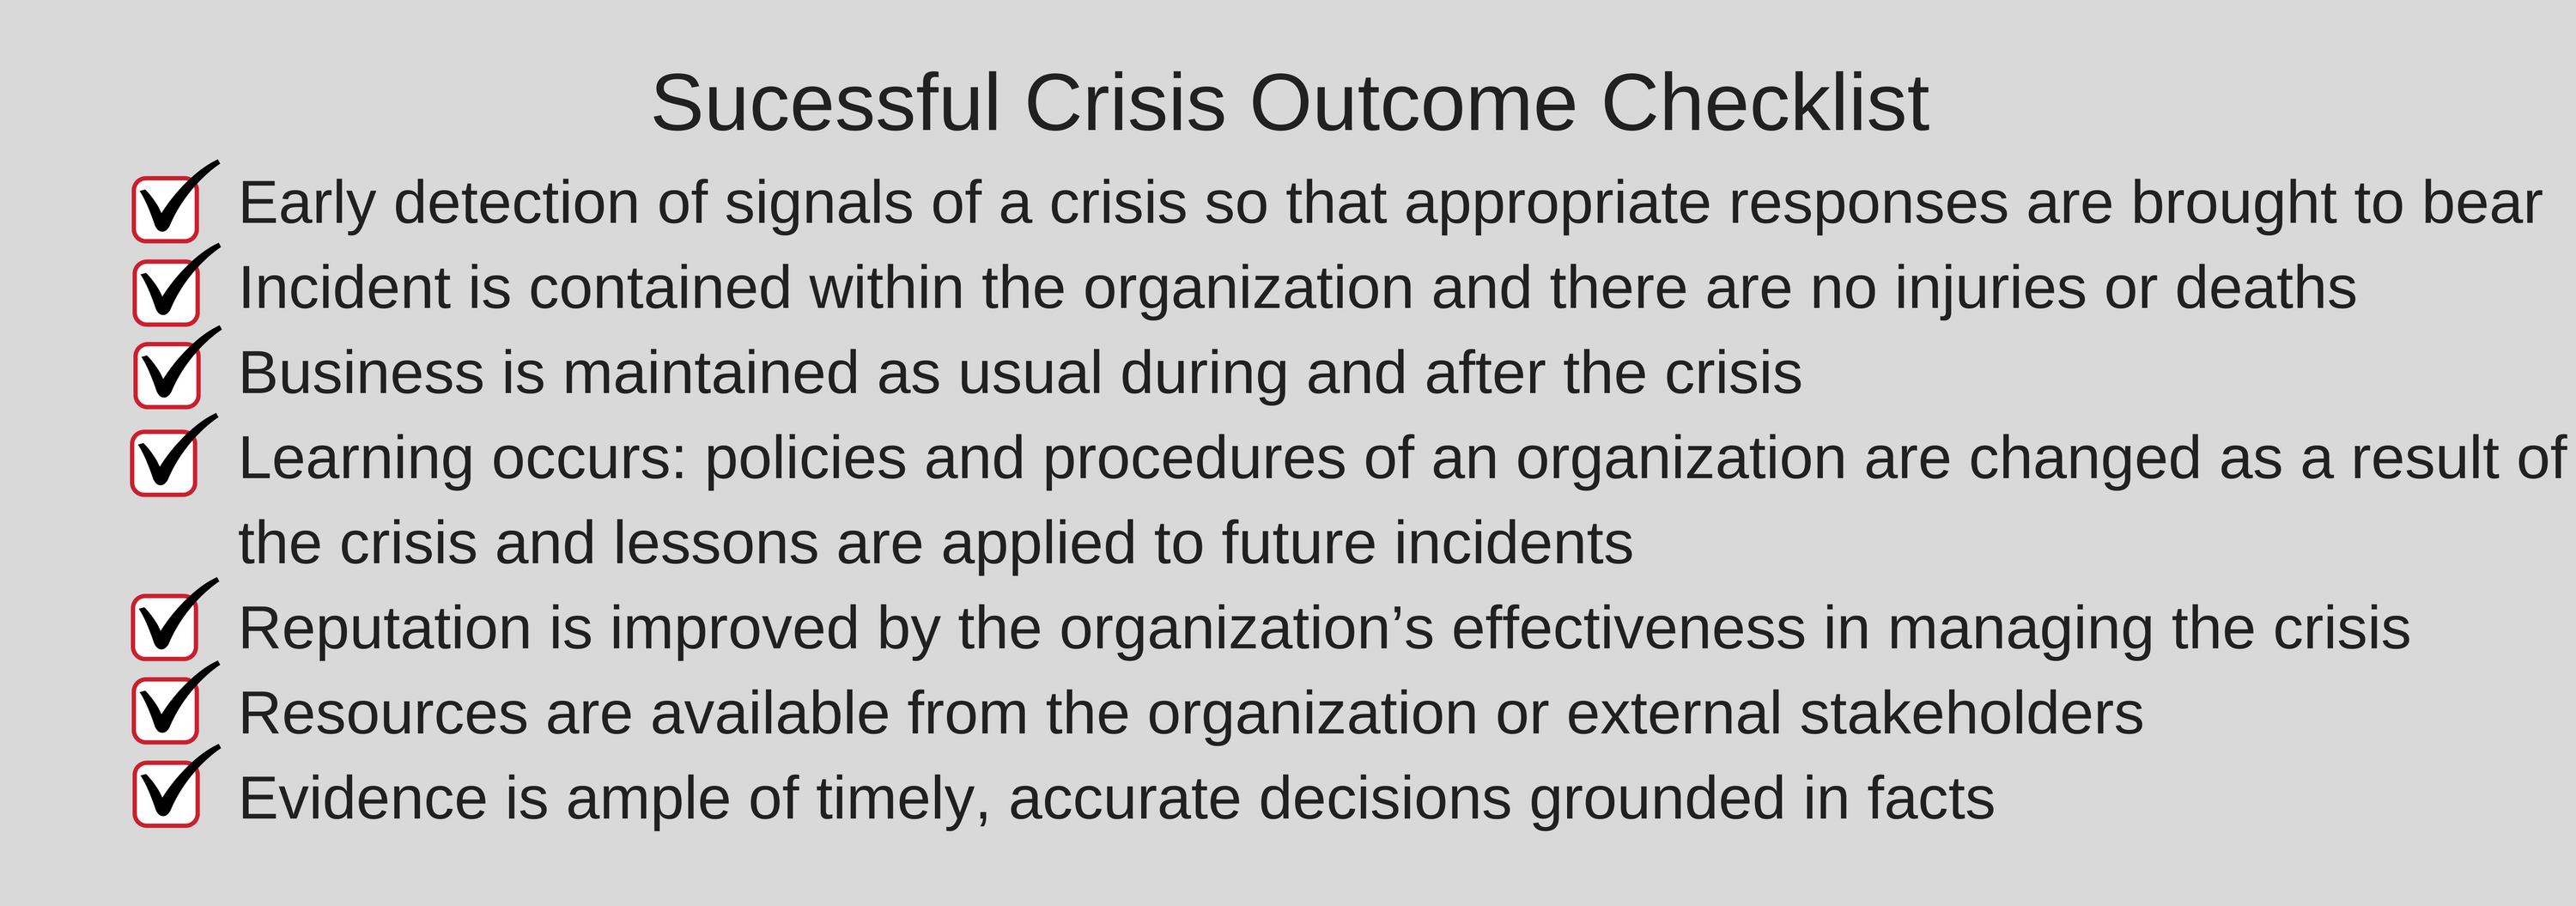 Successful Crisis Outcome